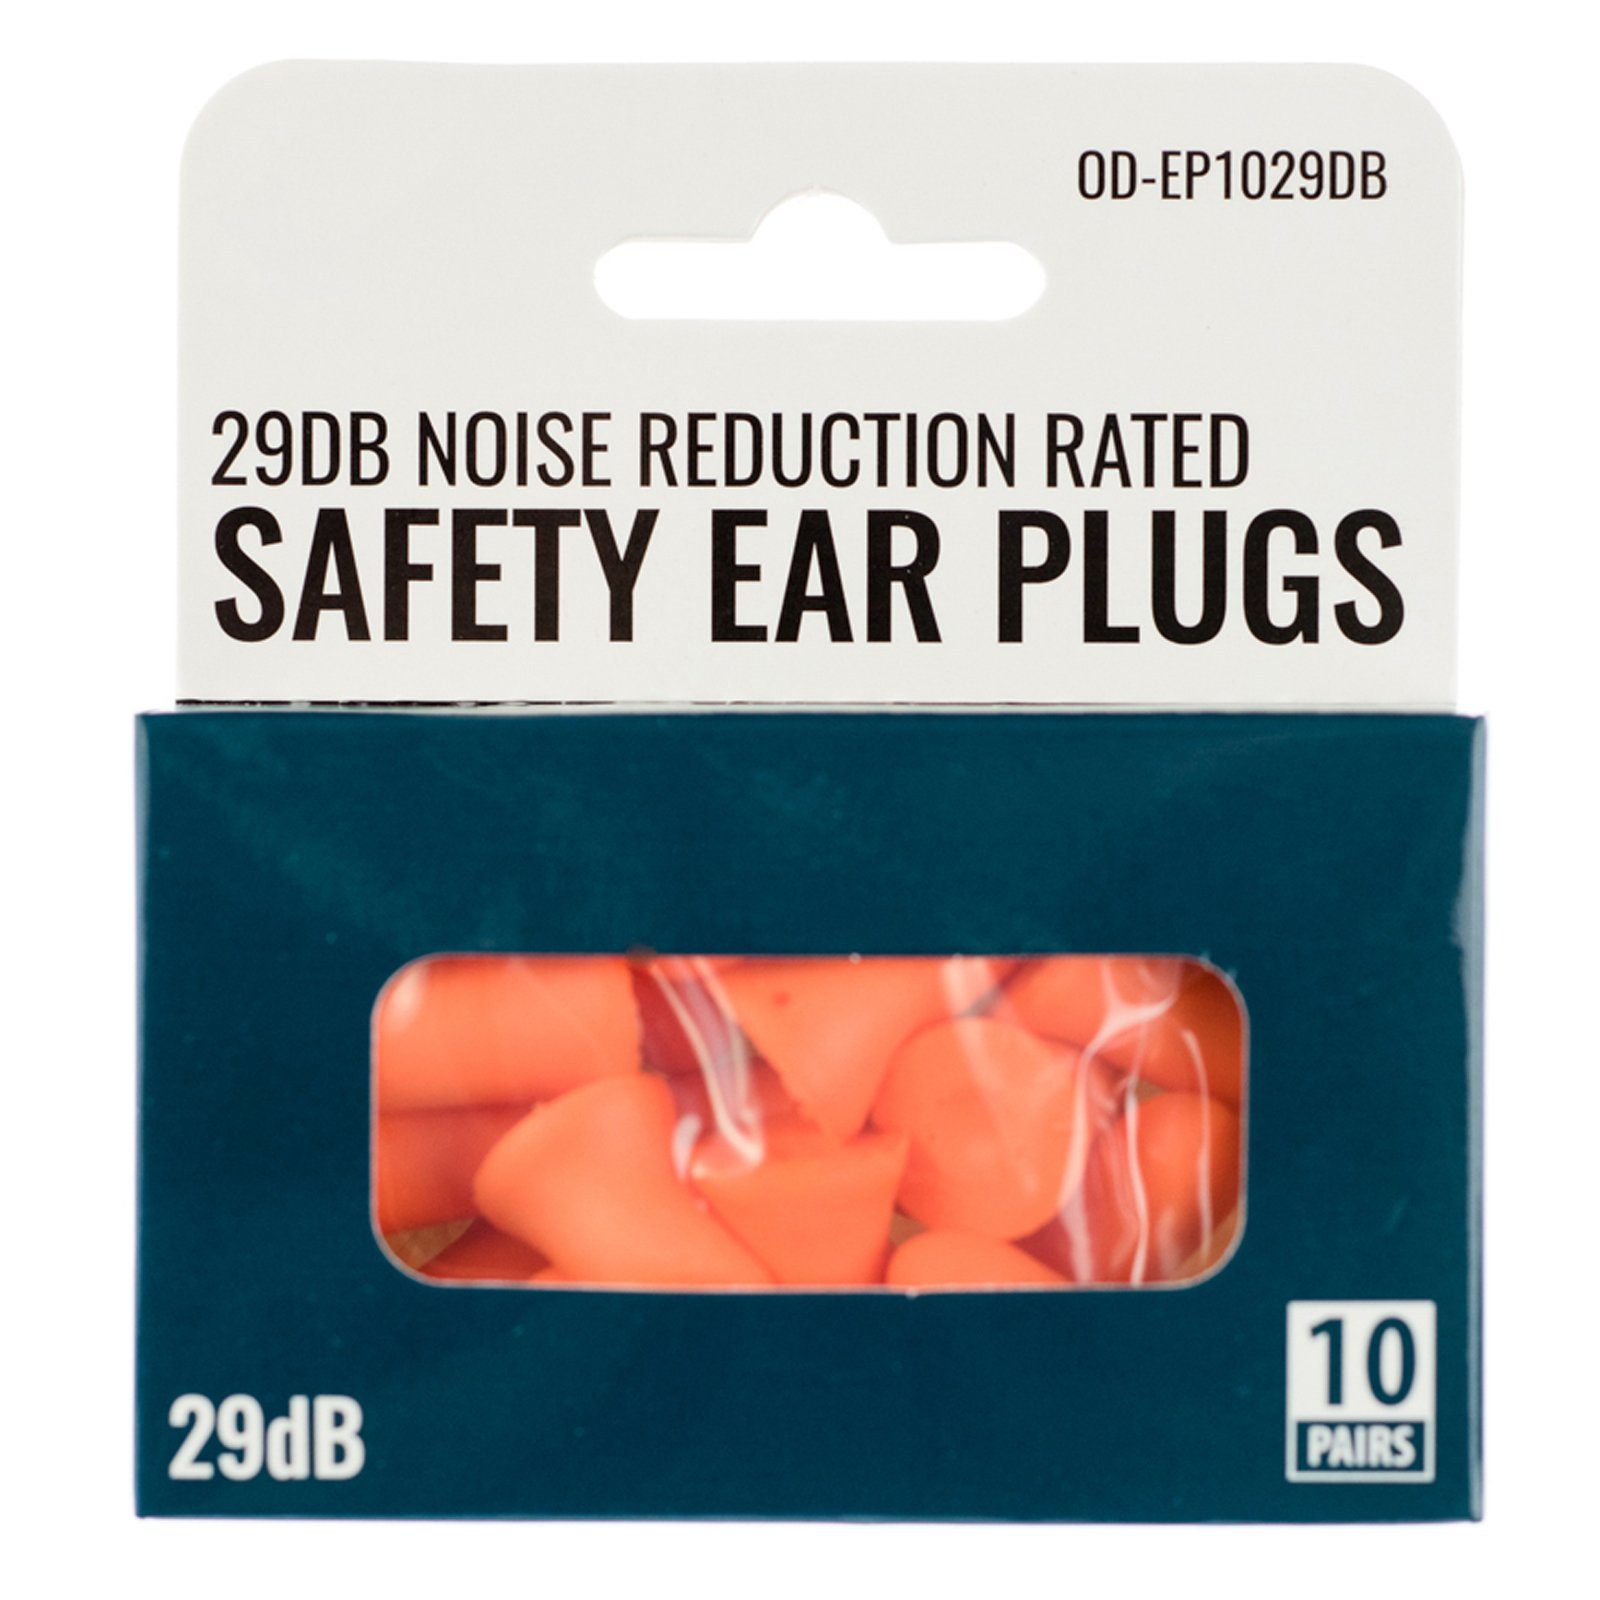 ASR Outdoor 29 dB Noise Reduction Rated Safety Ear Plugs (10 Pairs) Protect Ears